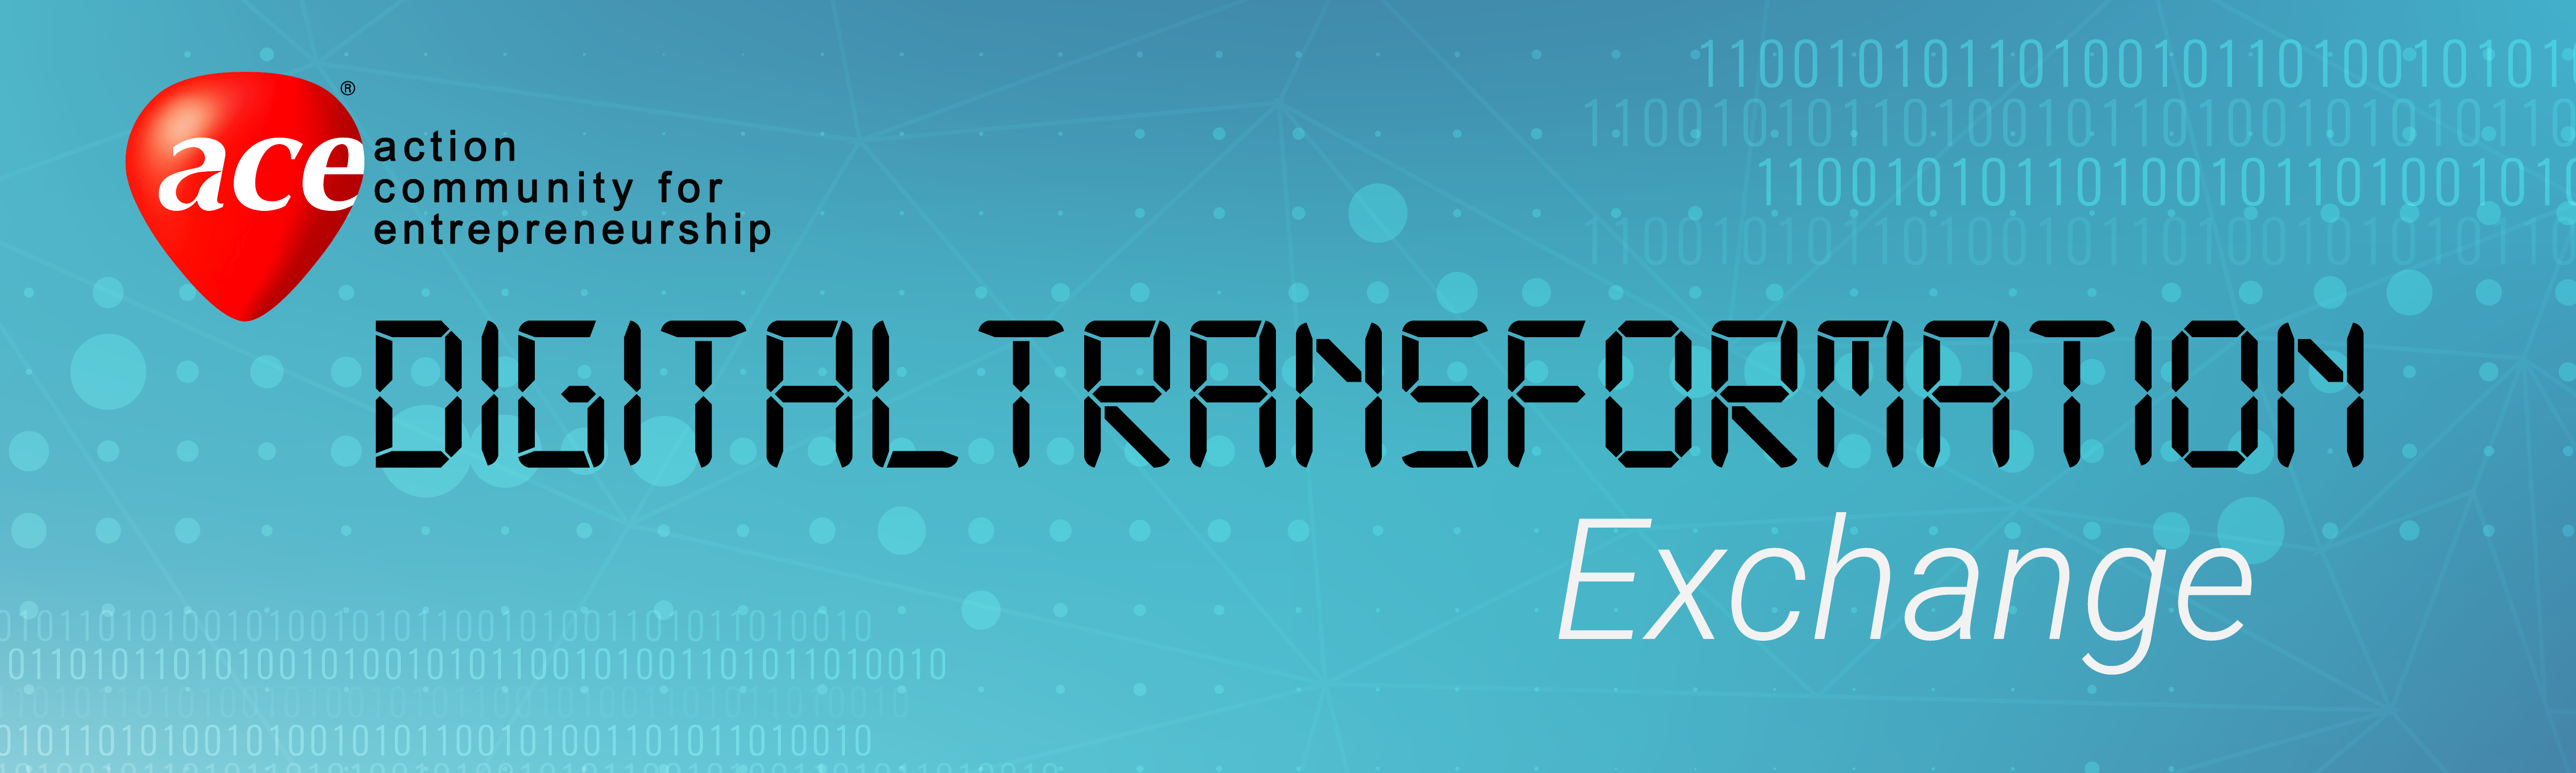 ACE Digital Transformation Exchange: Foodtech Solutions Banner Image